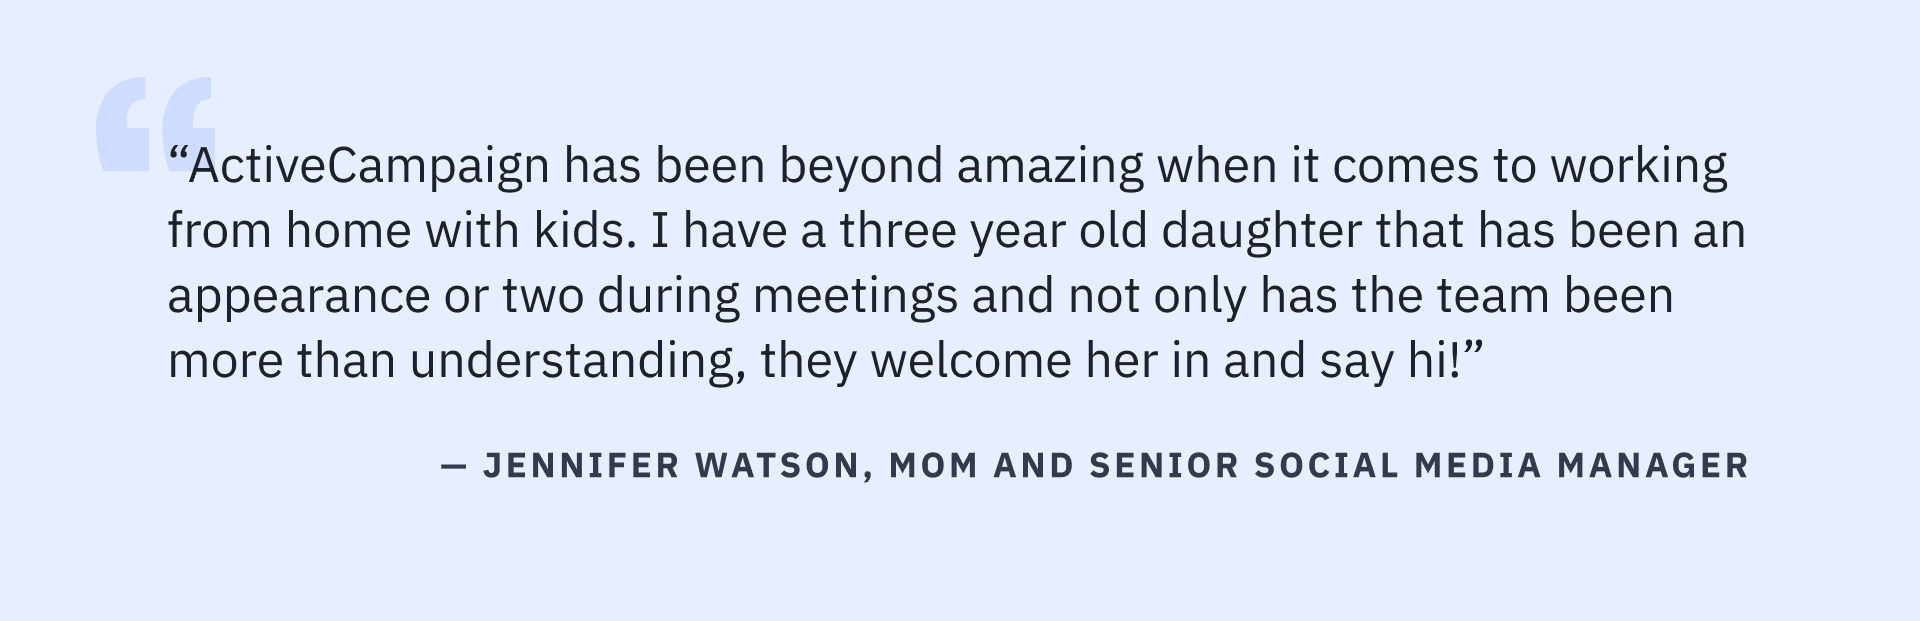 ActiveCampaign employee shares their experience as a Parent during Parents' Day 2021